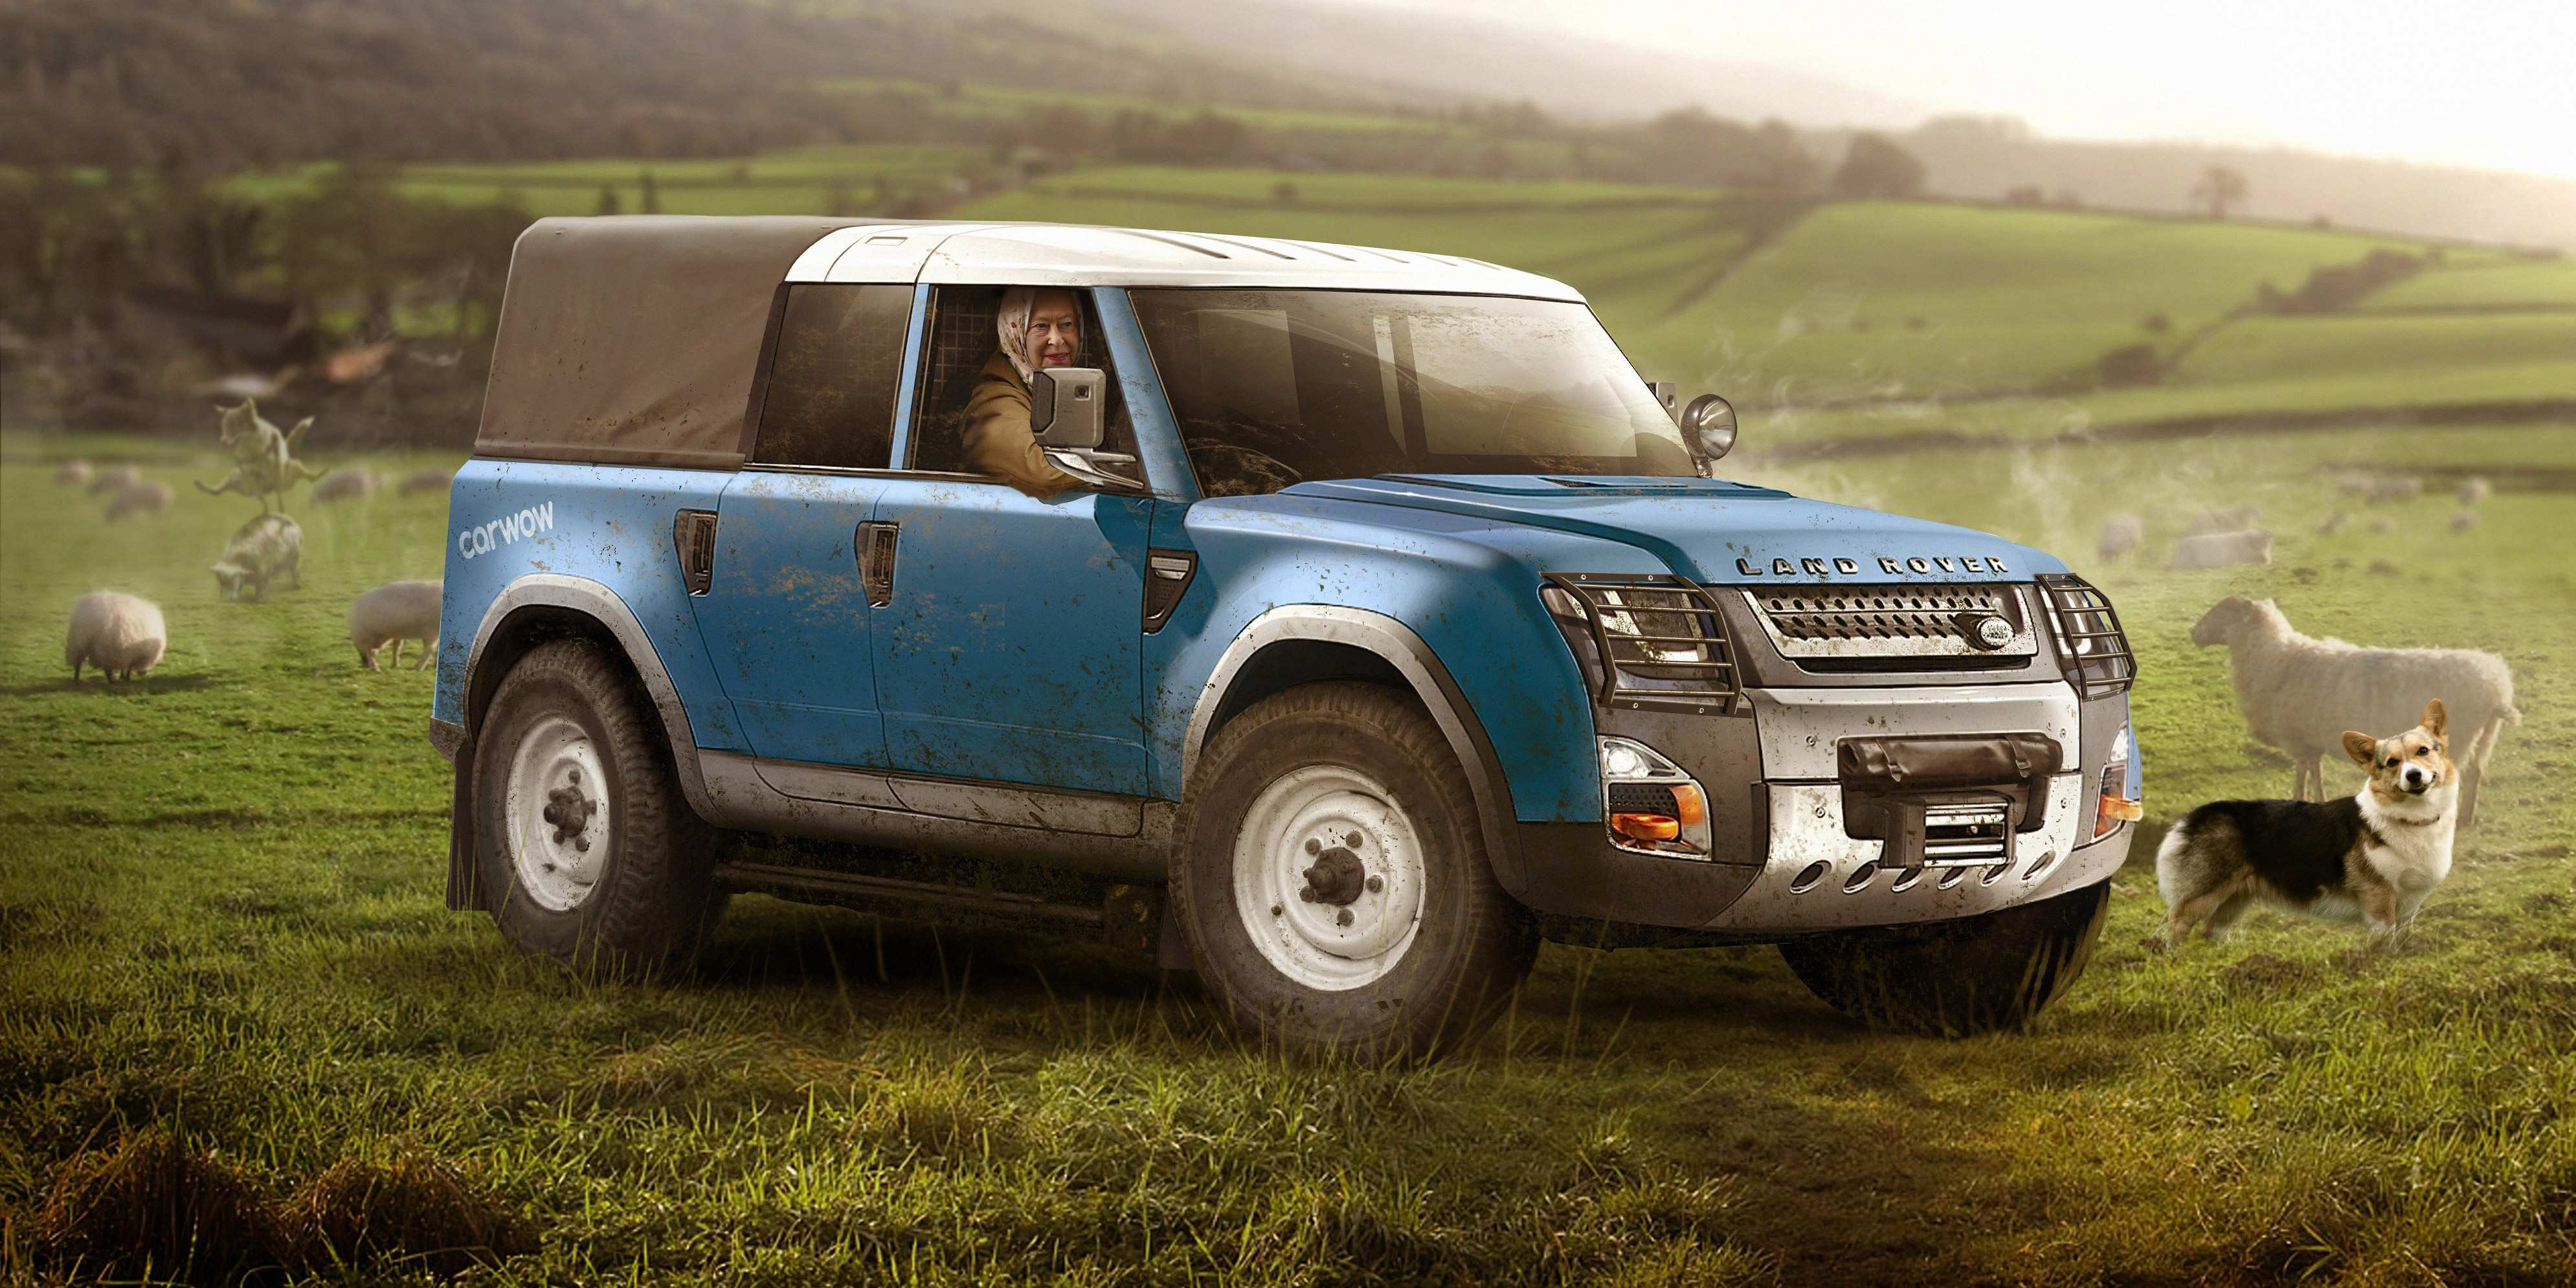 73 Gallery of 2019 Land Rover Defender Price First Drive with 2019 Land Rover Defender Price